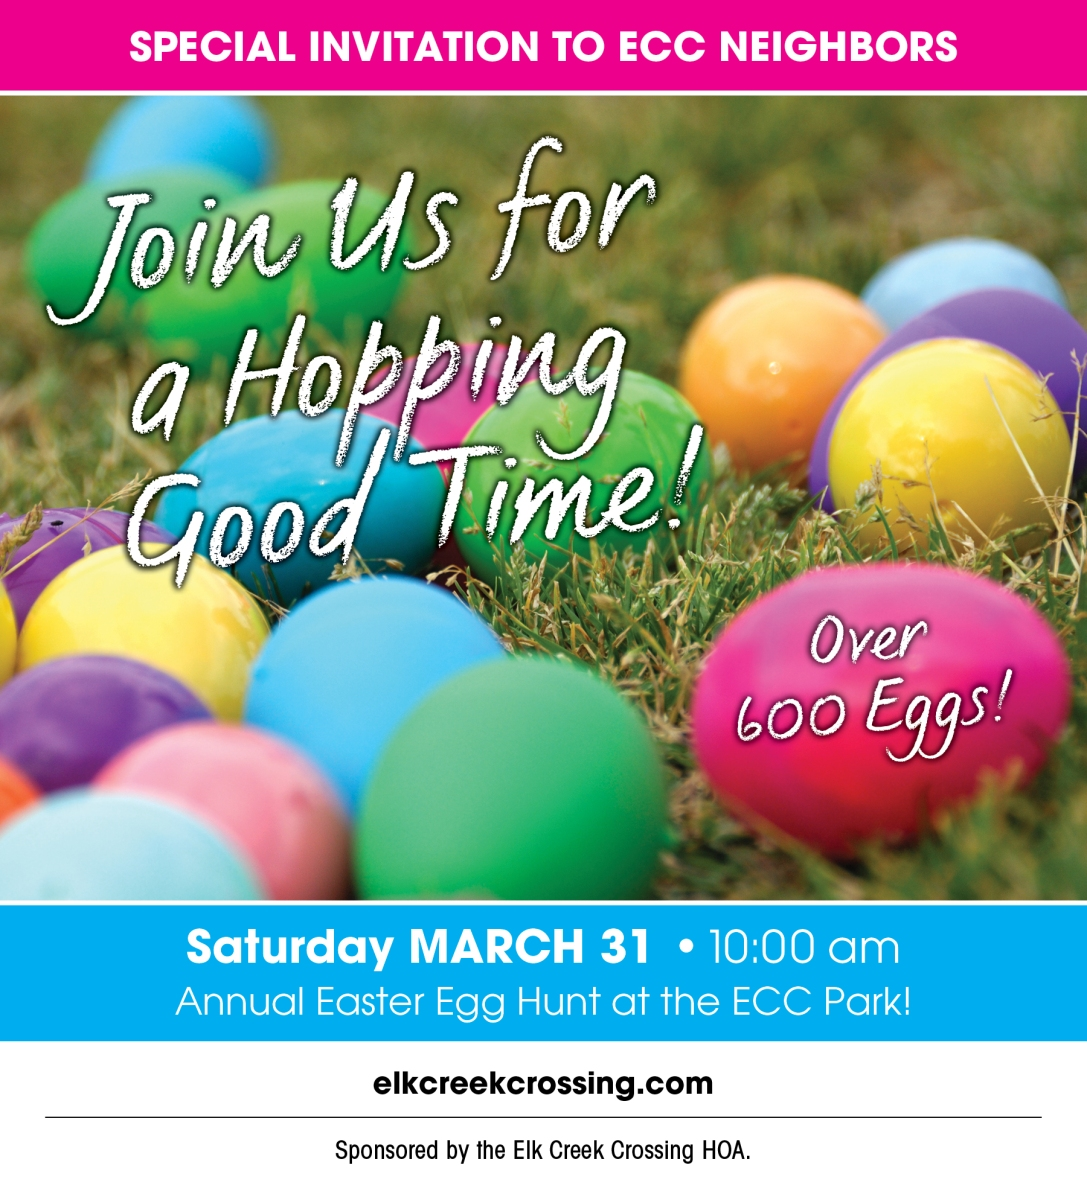 HOORAY - ECC Easter Egg Hunt Date Set!